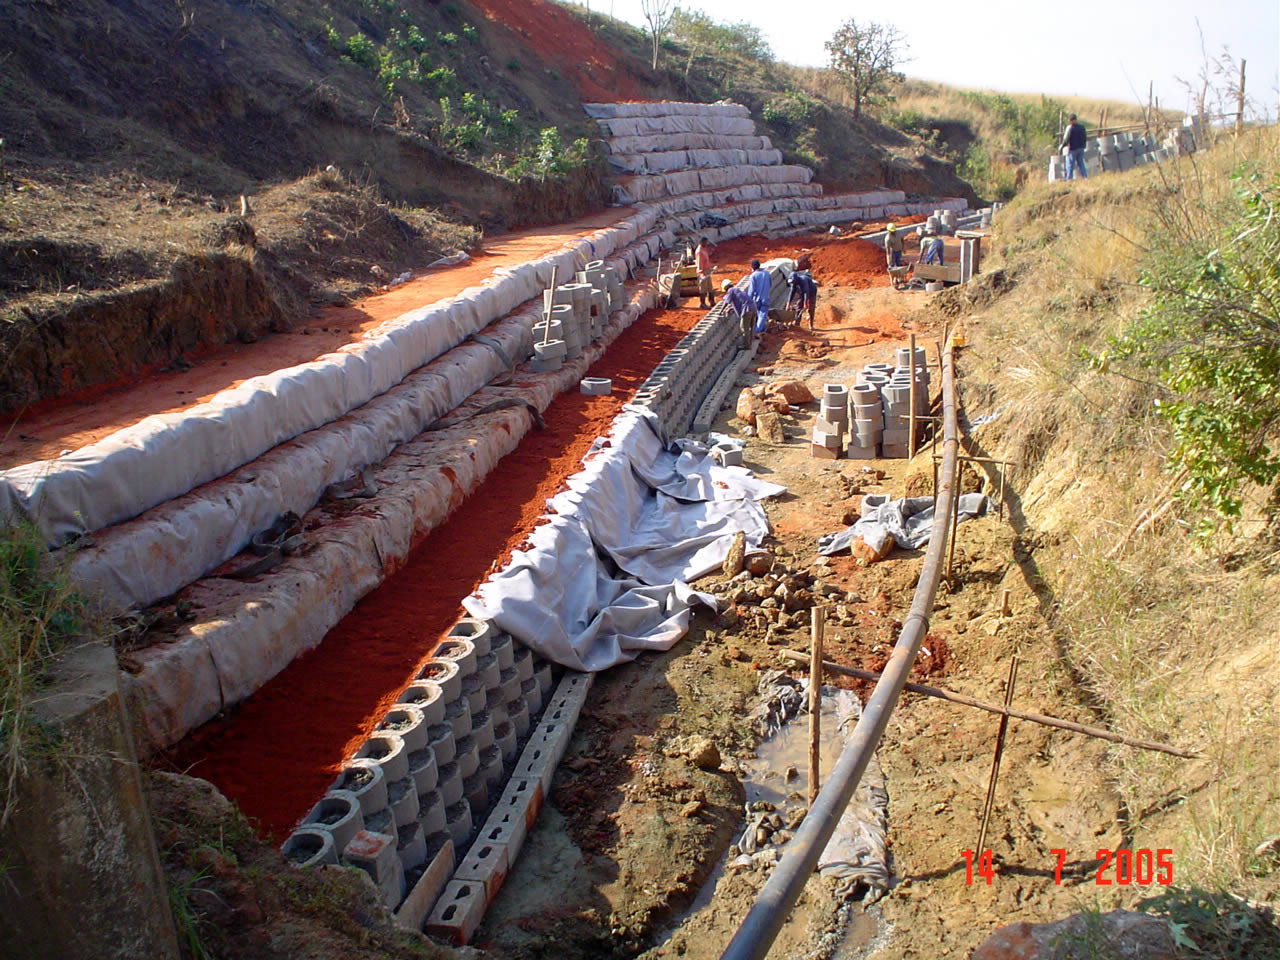 To support an existing canal that was heavily eroded, it was necessary to employ strong measures